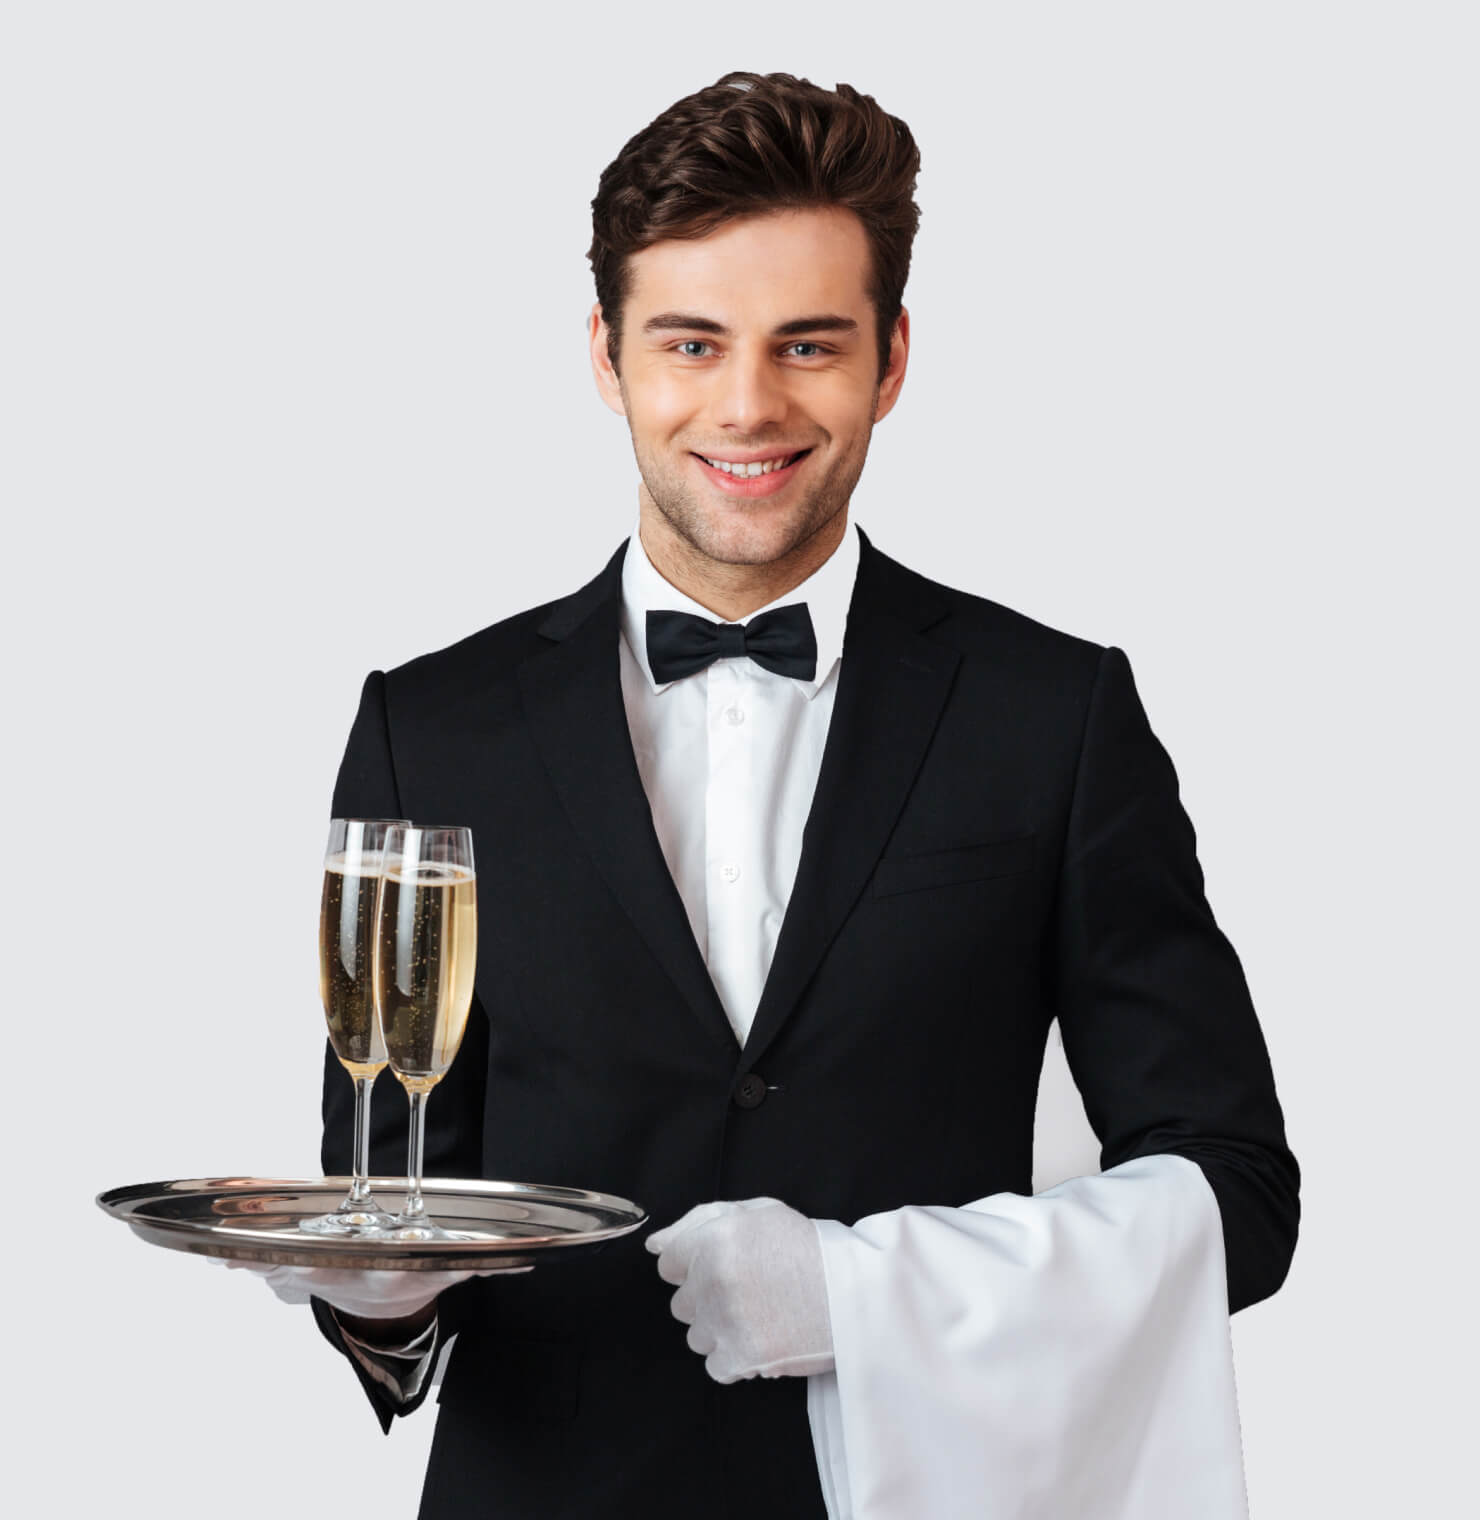 waiter-page-food